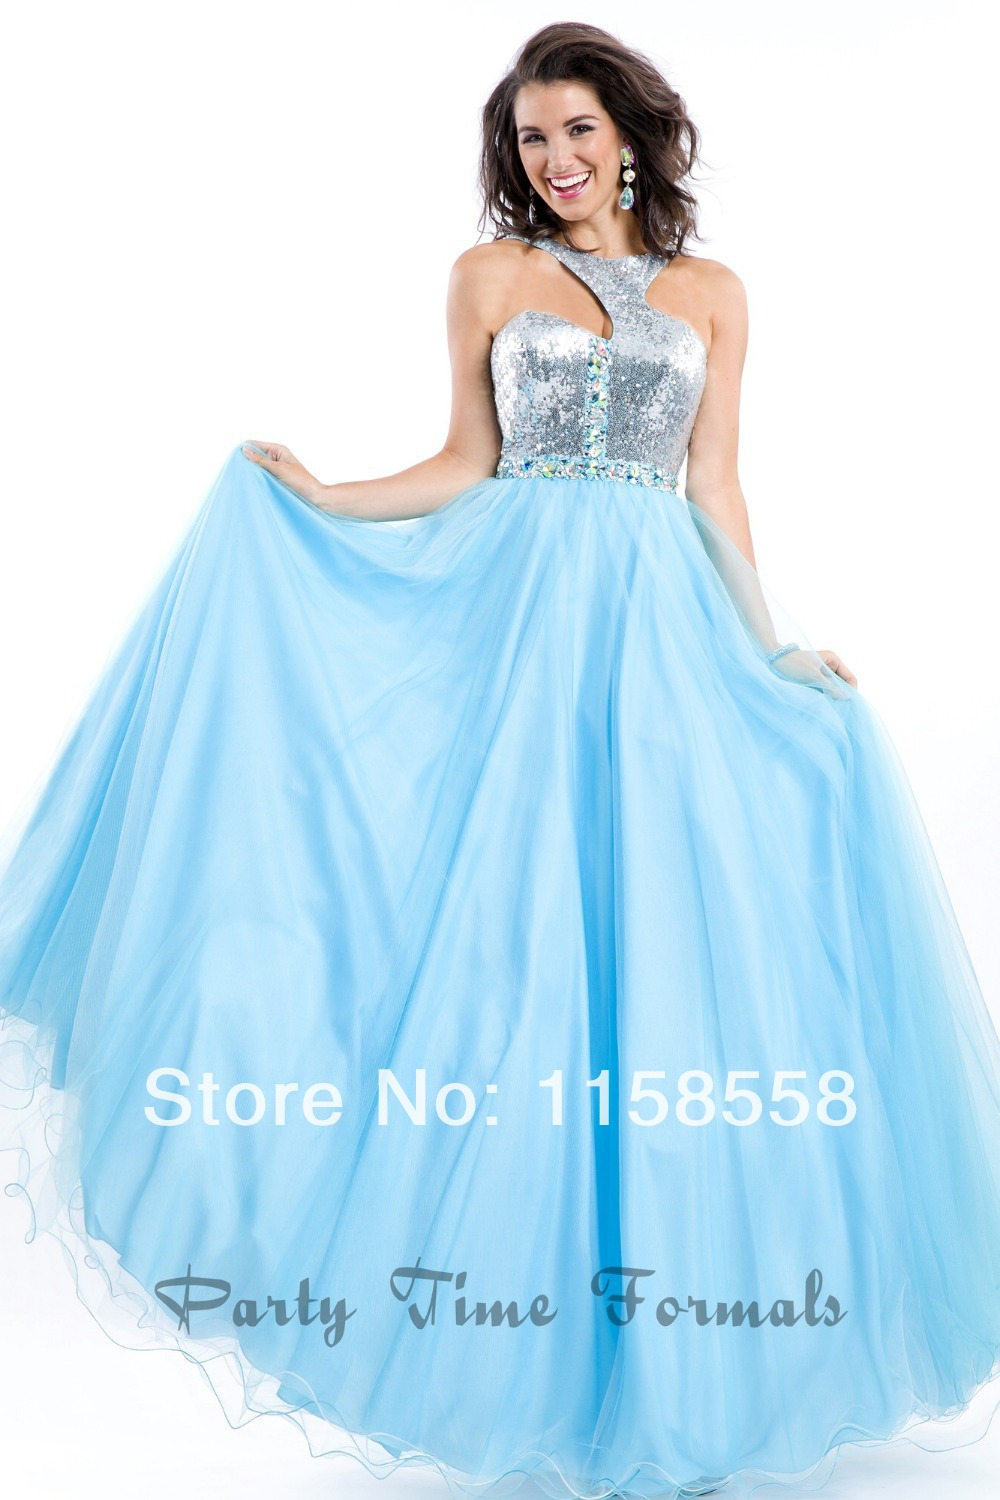 Contemporary Bealls Prom Dresses Festooning - All Wedding Dresses ...